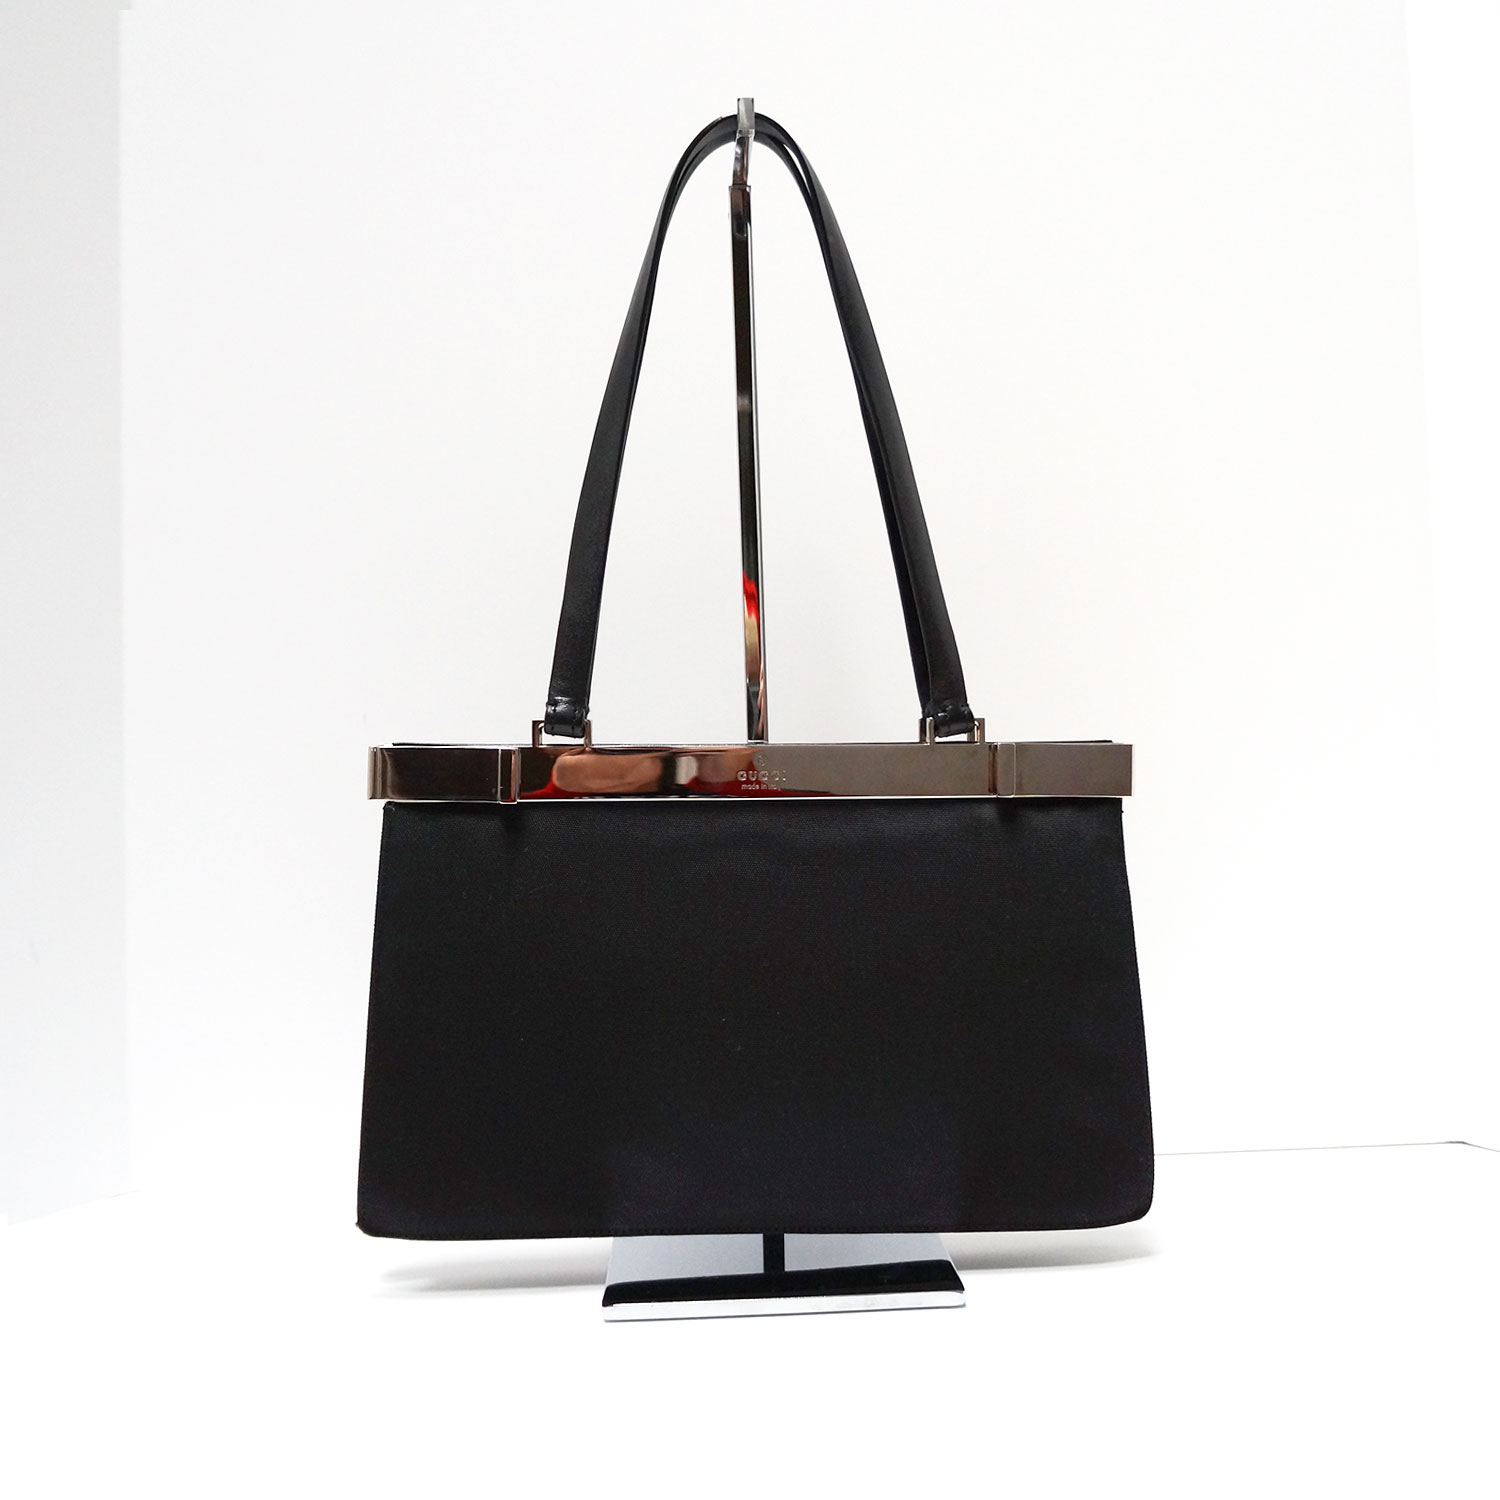 464464b2e9e285 Gucci Black Chic Vintage Top Clasp Evening Bag with Leather Handles ...